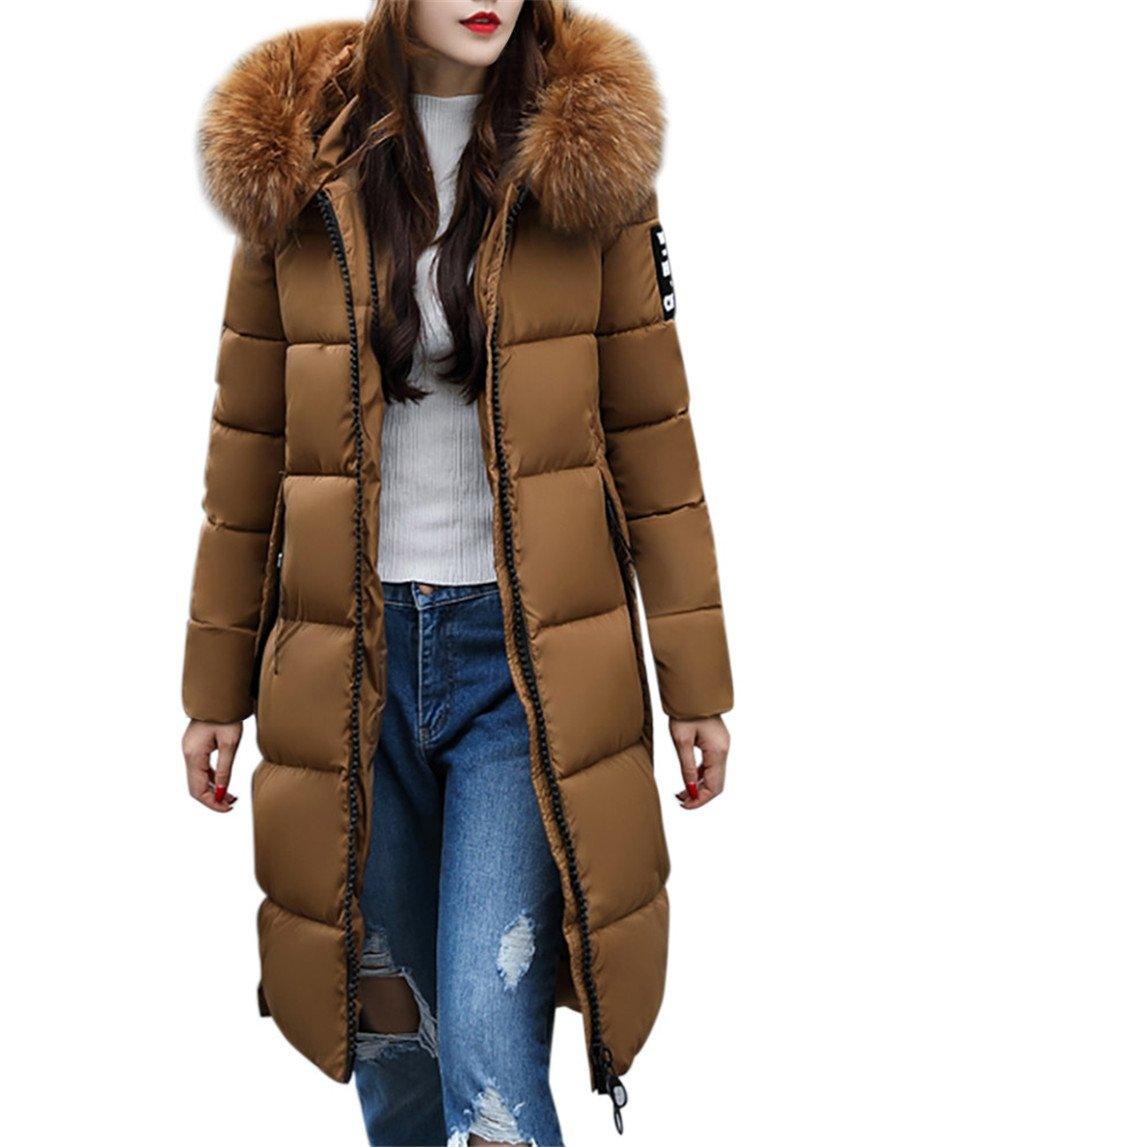 Nadition Women Solid Coat Clearance ♥ Casual Thicker Winter Slim Down Lammy Jacket Coat Overcoat (Coffee, 2XL)